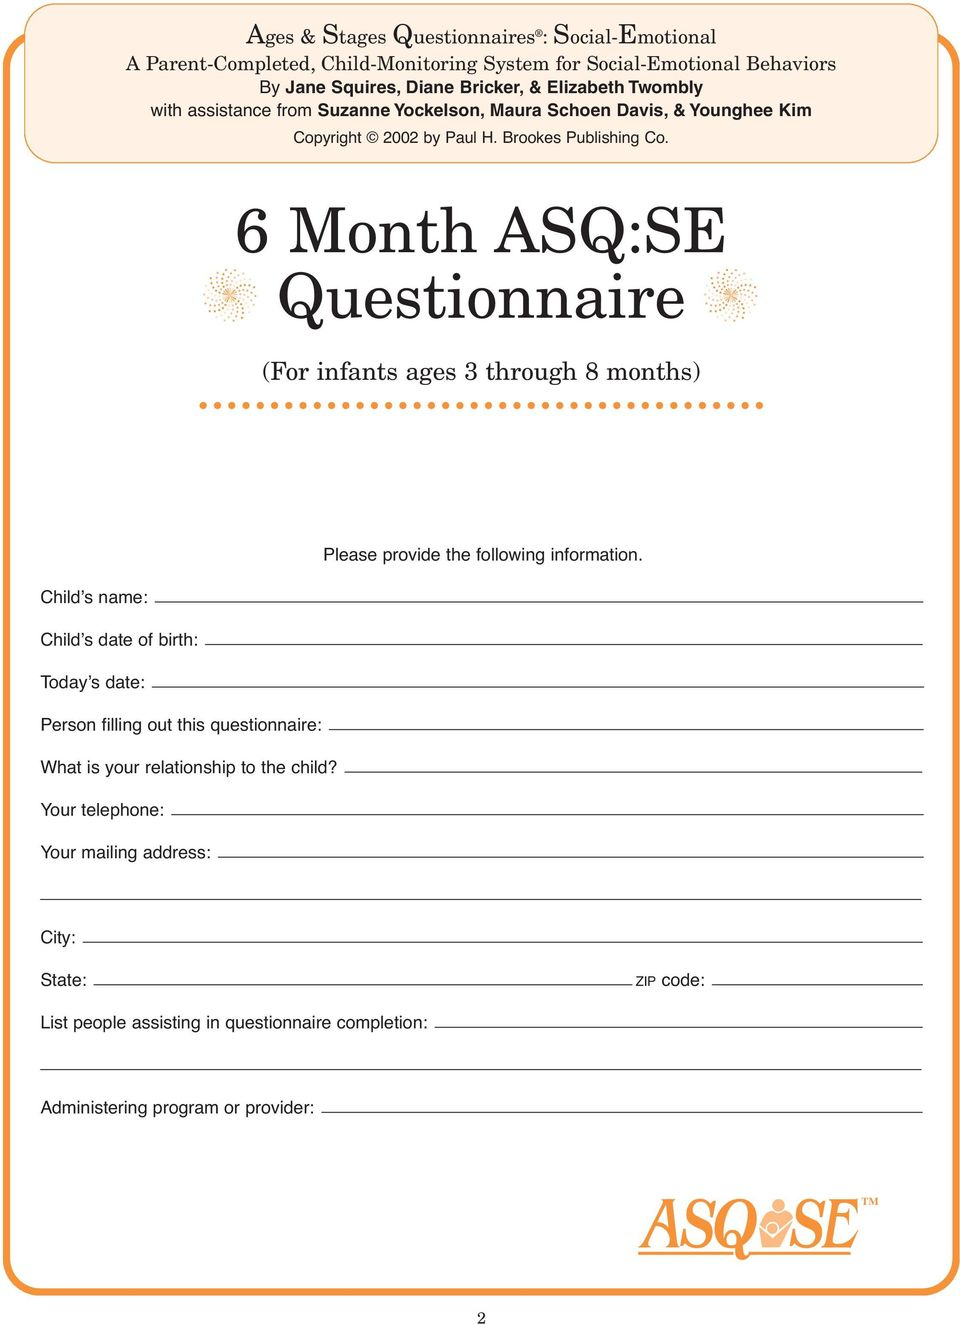 6 Month ASQ:SE Questionnaire (For infants ages 3 through 8 months) Please provide the following information.